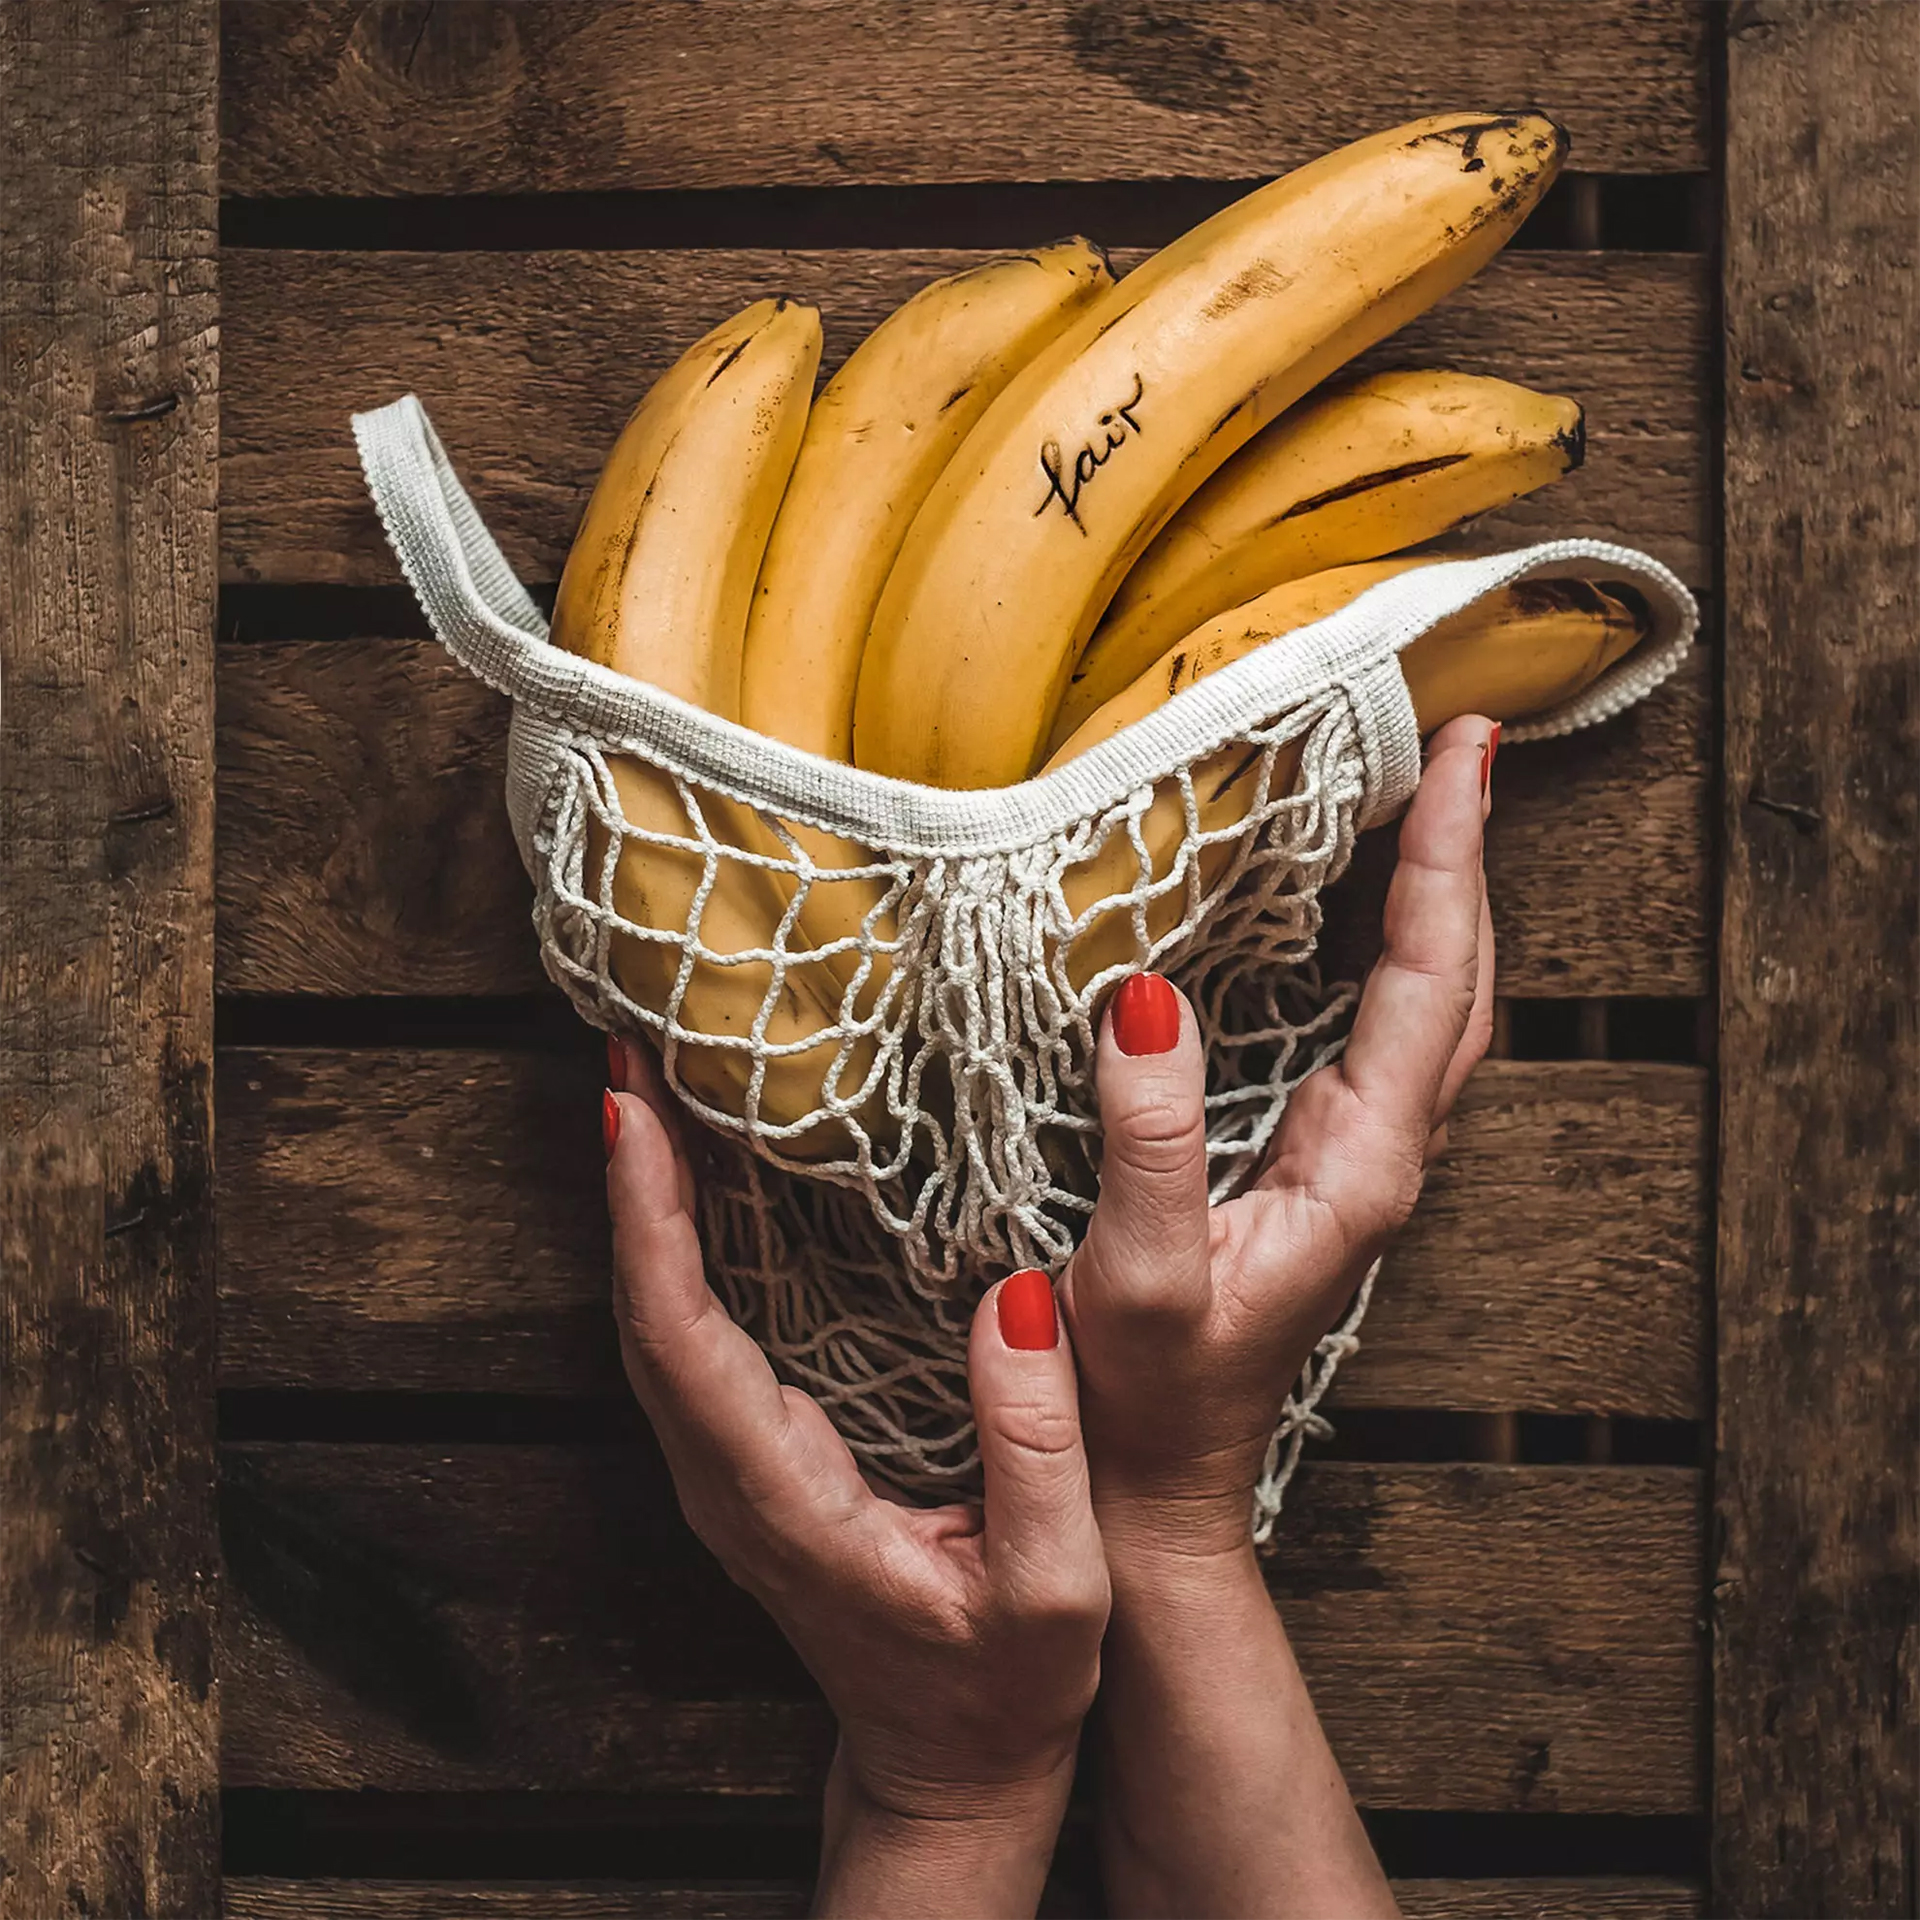 When you find fairtrade certified bananas, make sure you buy lots so you can freeze them to make smoothies later!